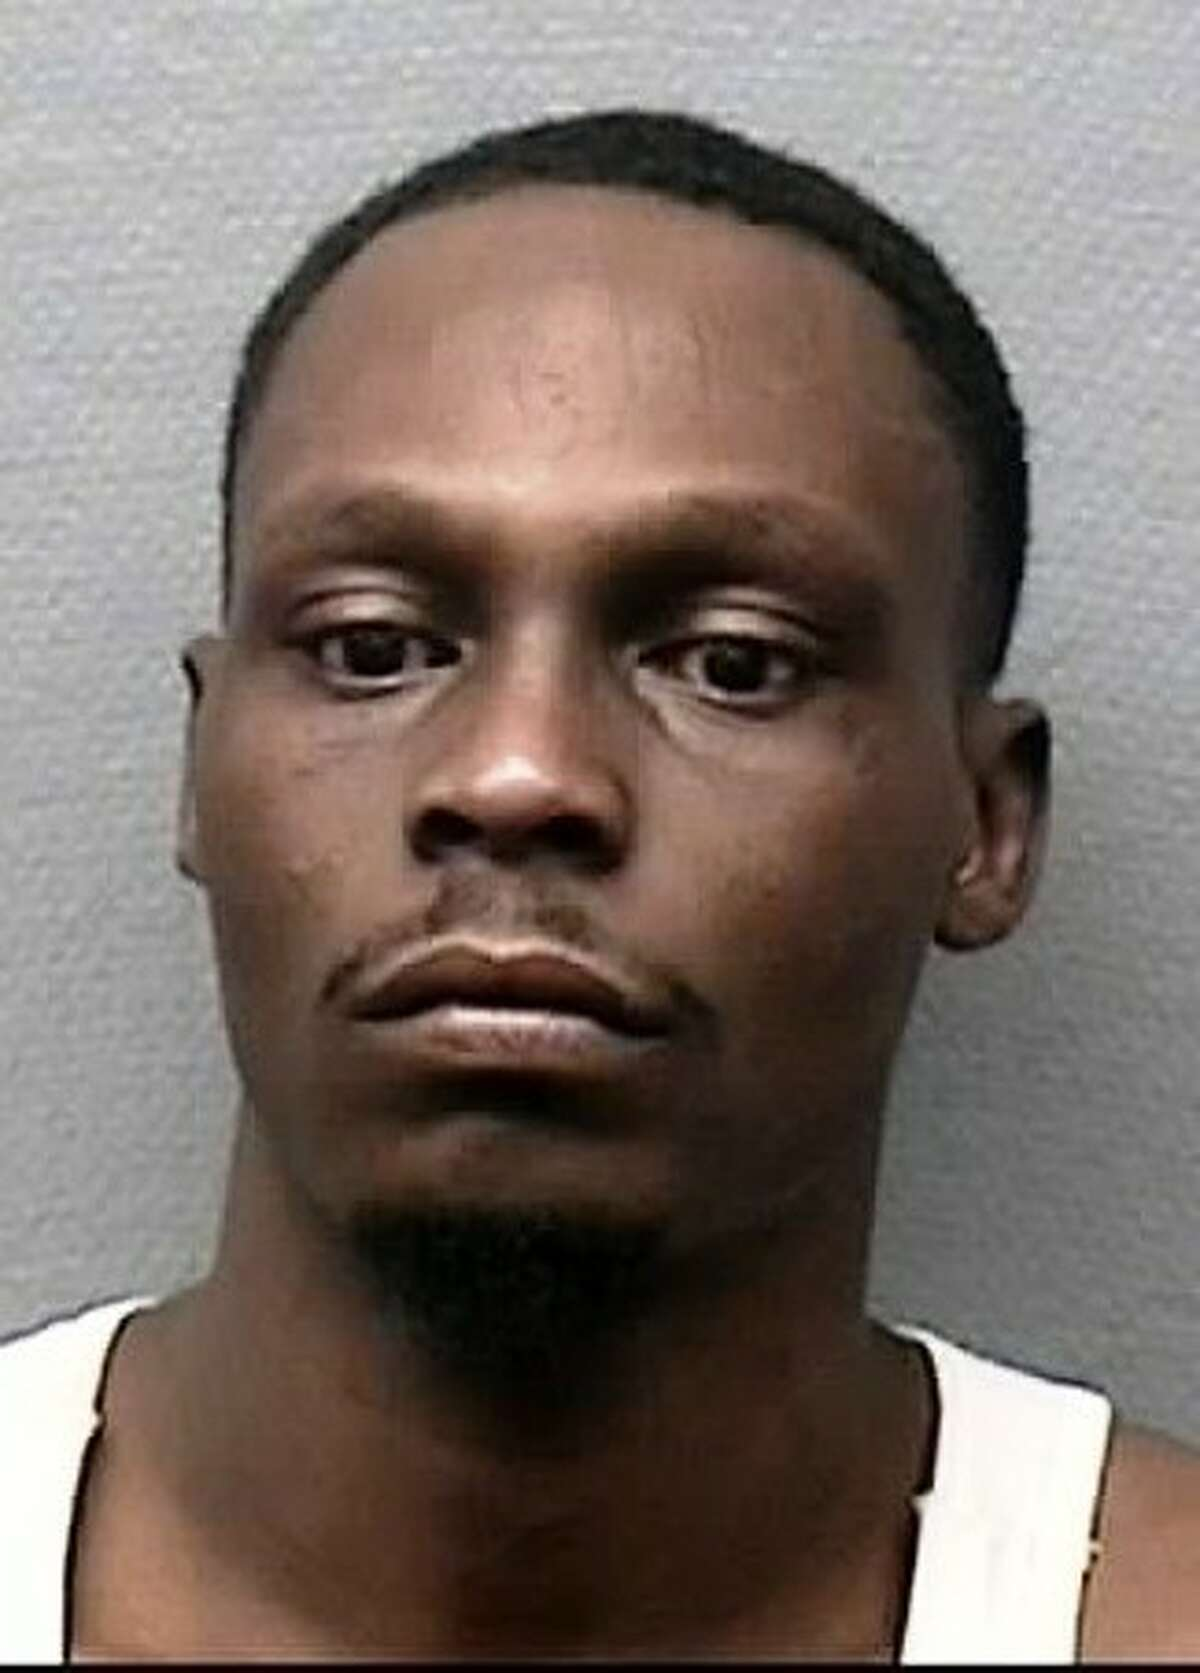 Che Lajuan Calhoun, 31, is charged with murder in the stabbing death of Josue Flores, 11, as the boy walked home from school Tuesday, May 17, 2016. (HPD)